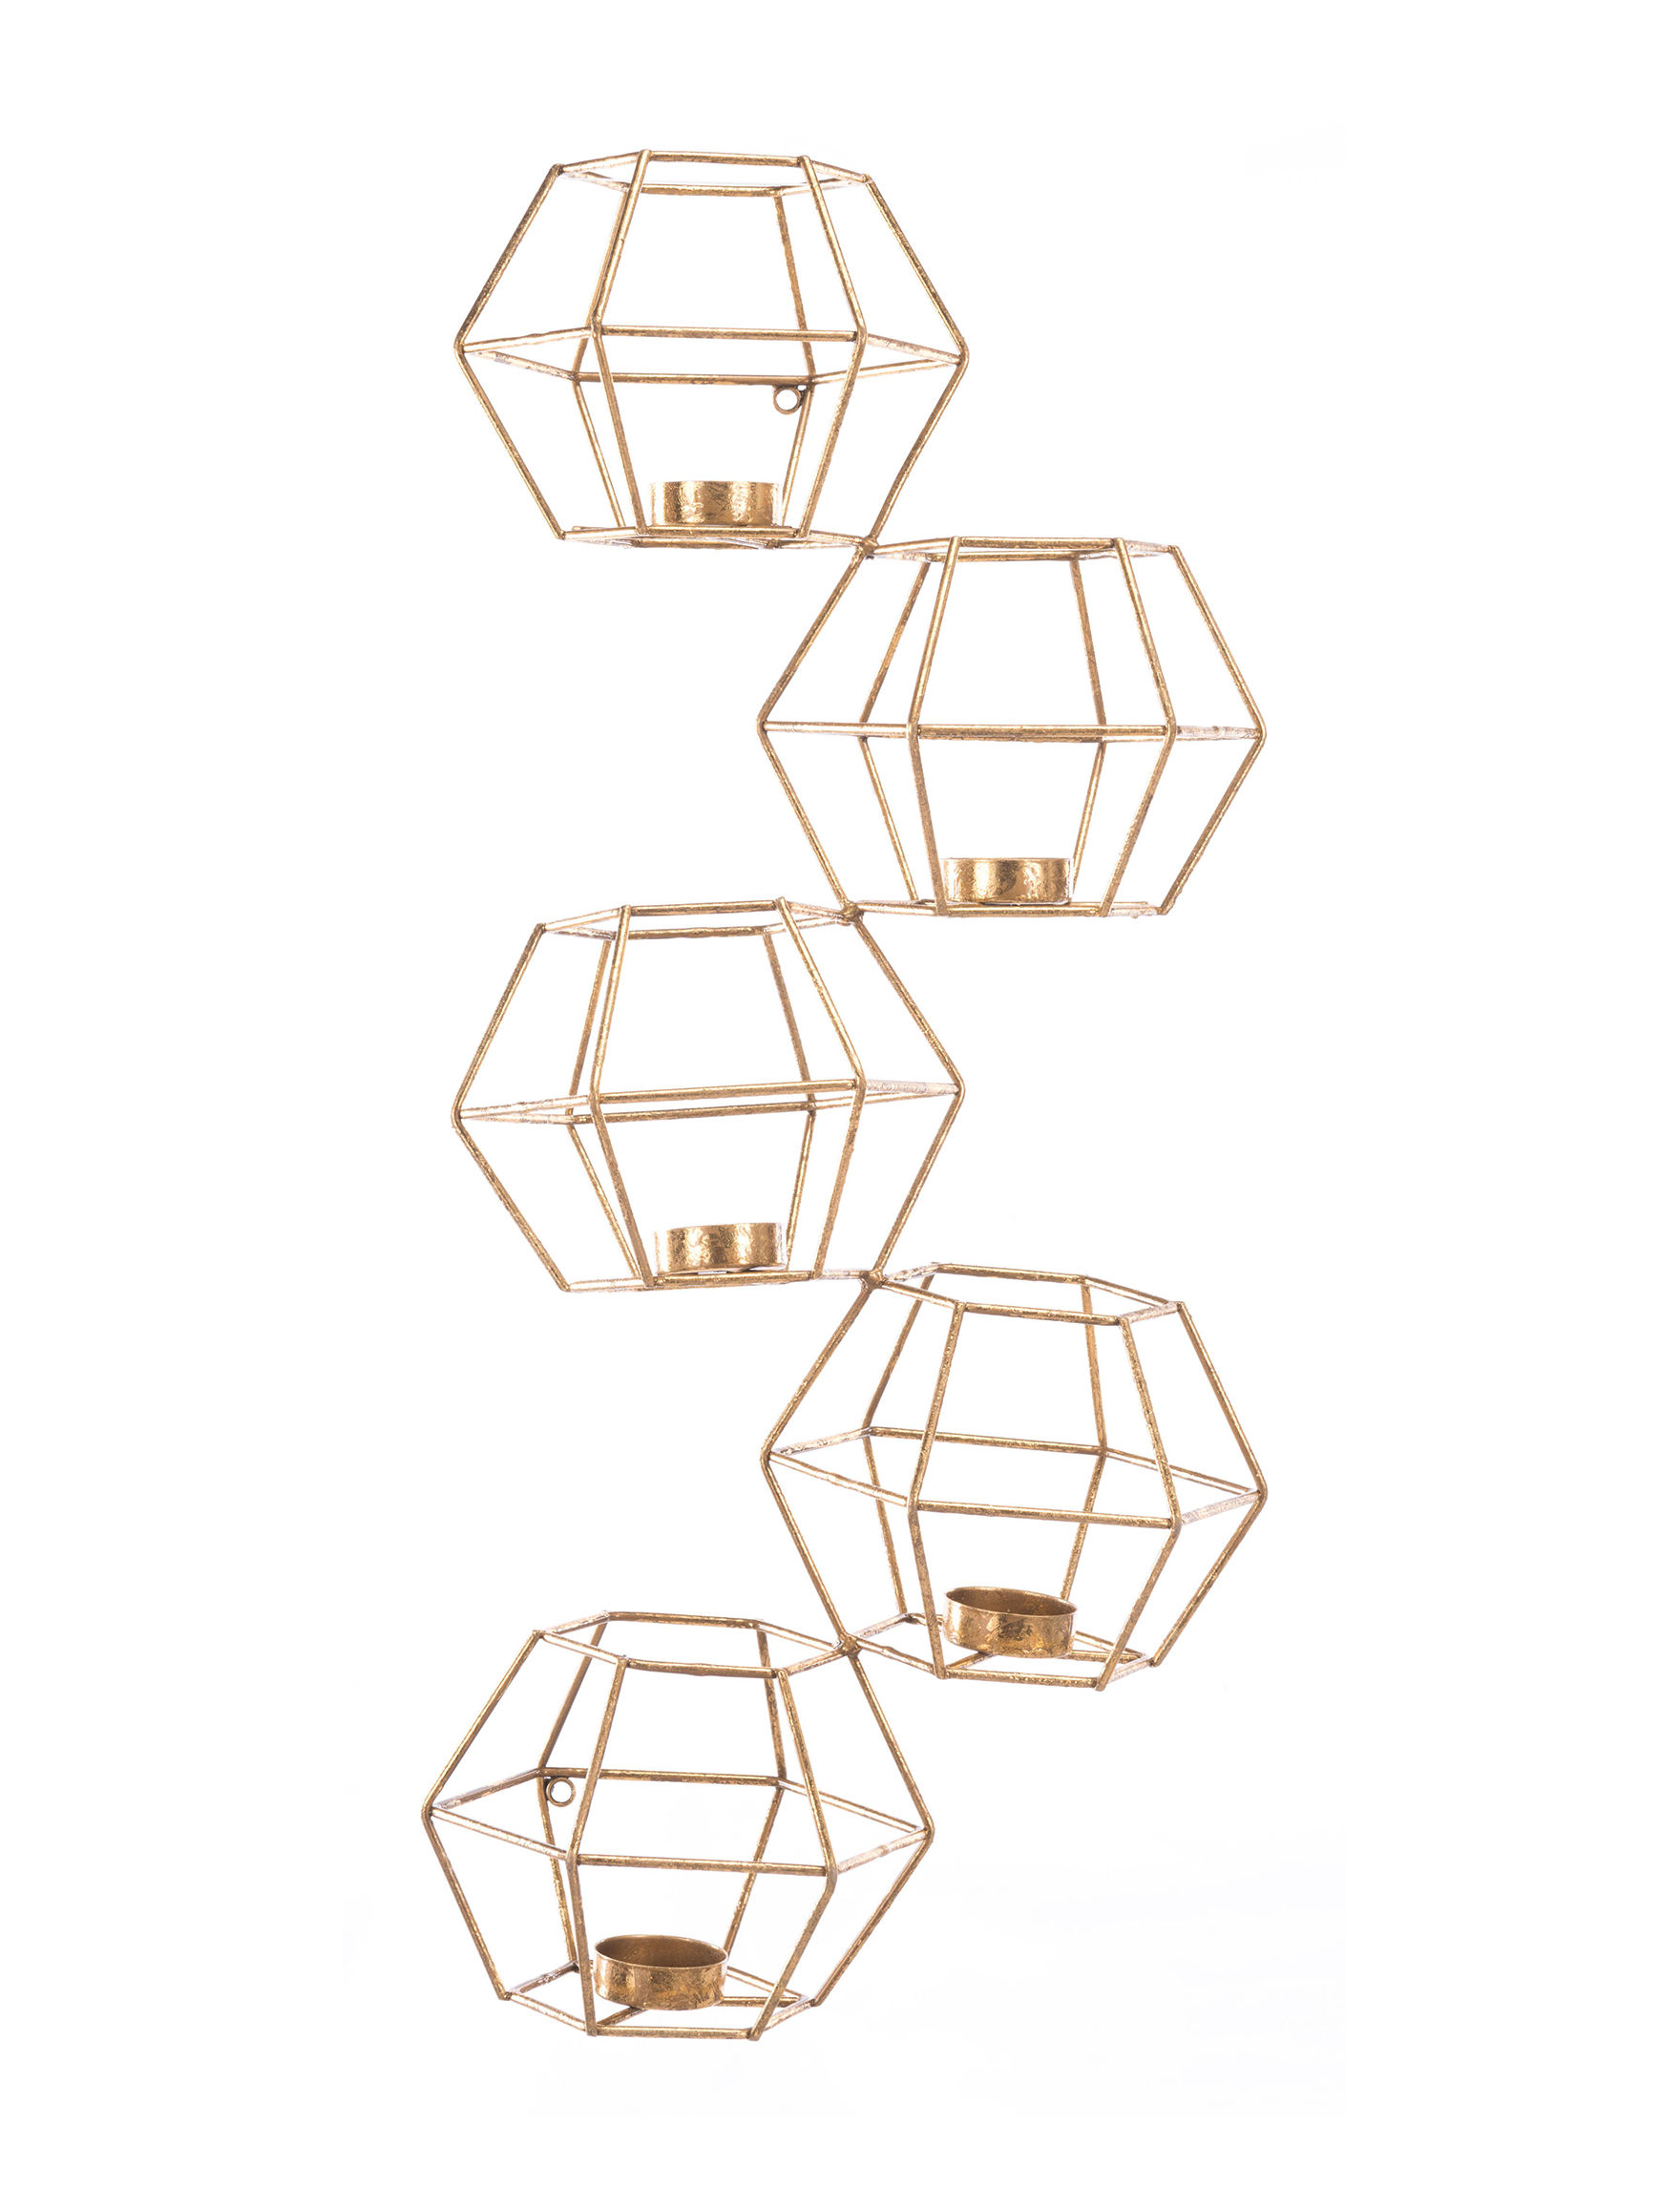 Zuo Modern  Candle Holders Candles & Diffusers Wall Decor